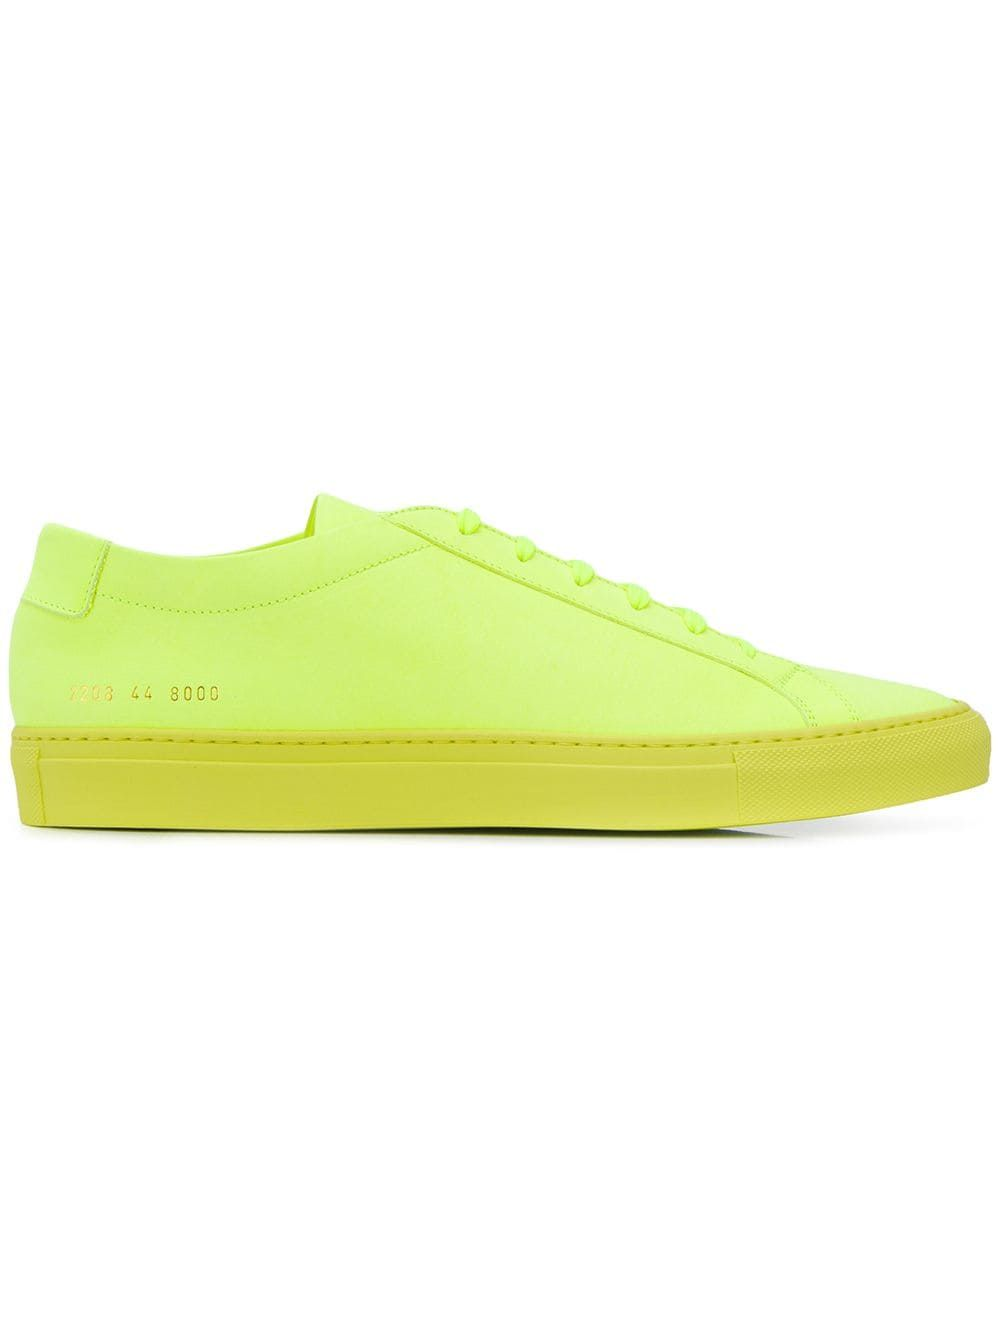 Common Projects Fluorescent Yellow